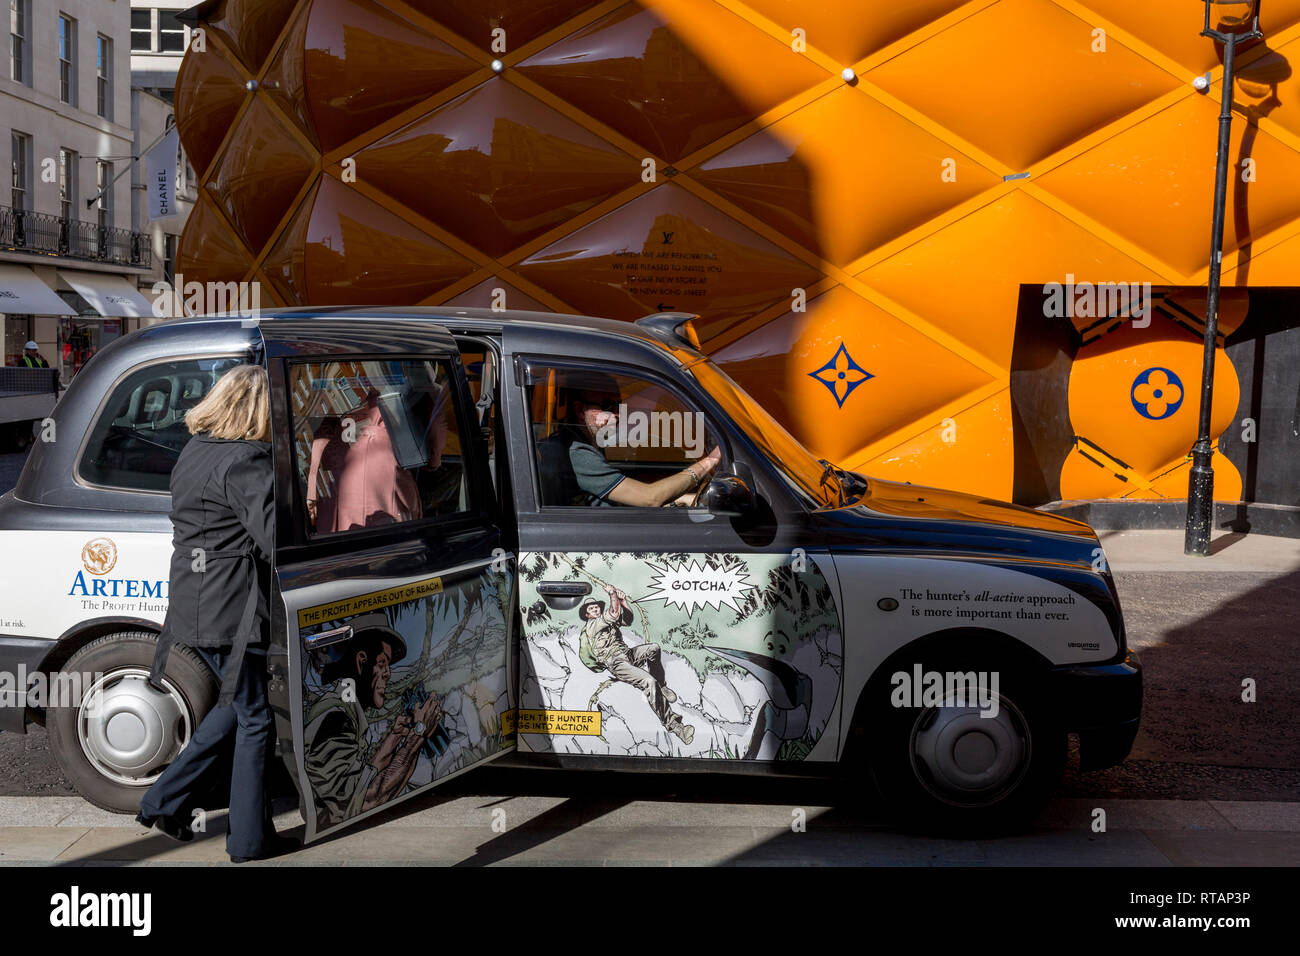 A black cab picks up fares opposite the temporary renovation hoarding of luxury brand Louis Vuitton in New Bond Street, on 25th February 2019, in London, England. - Stock Image